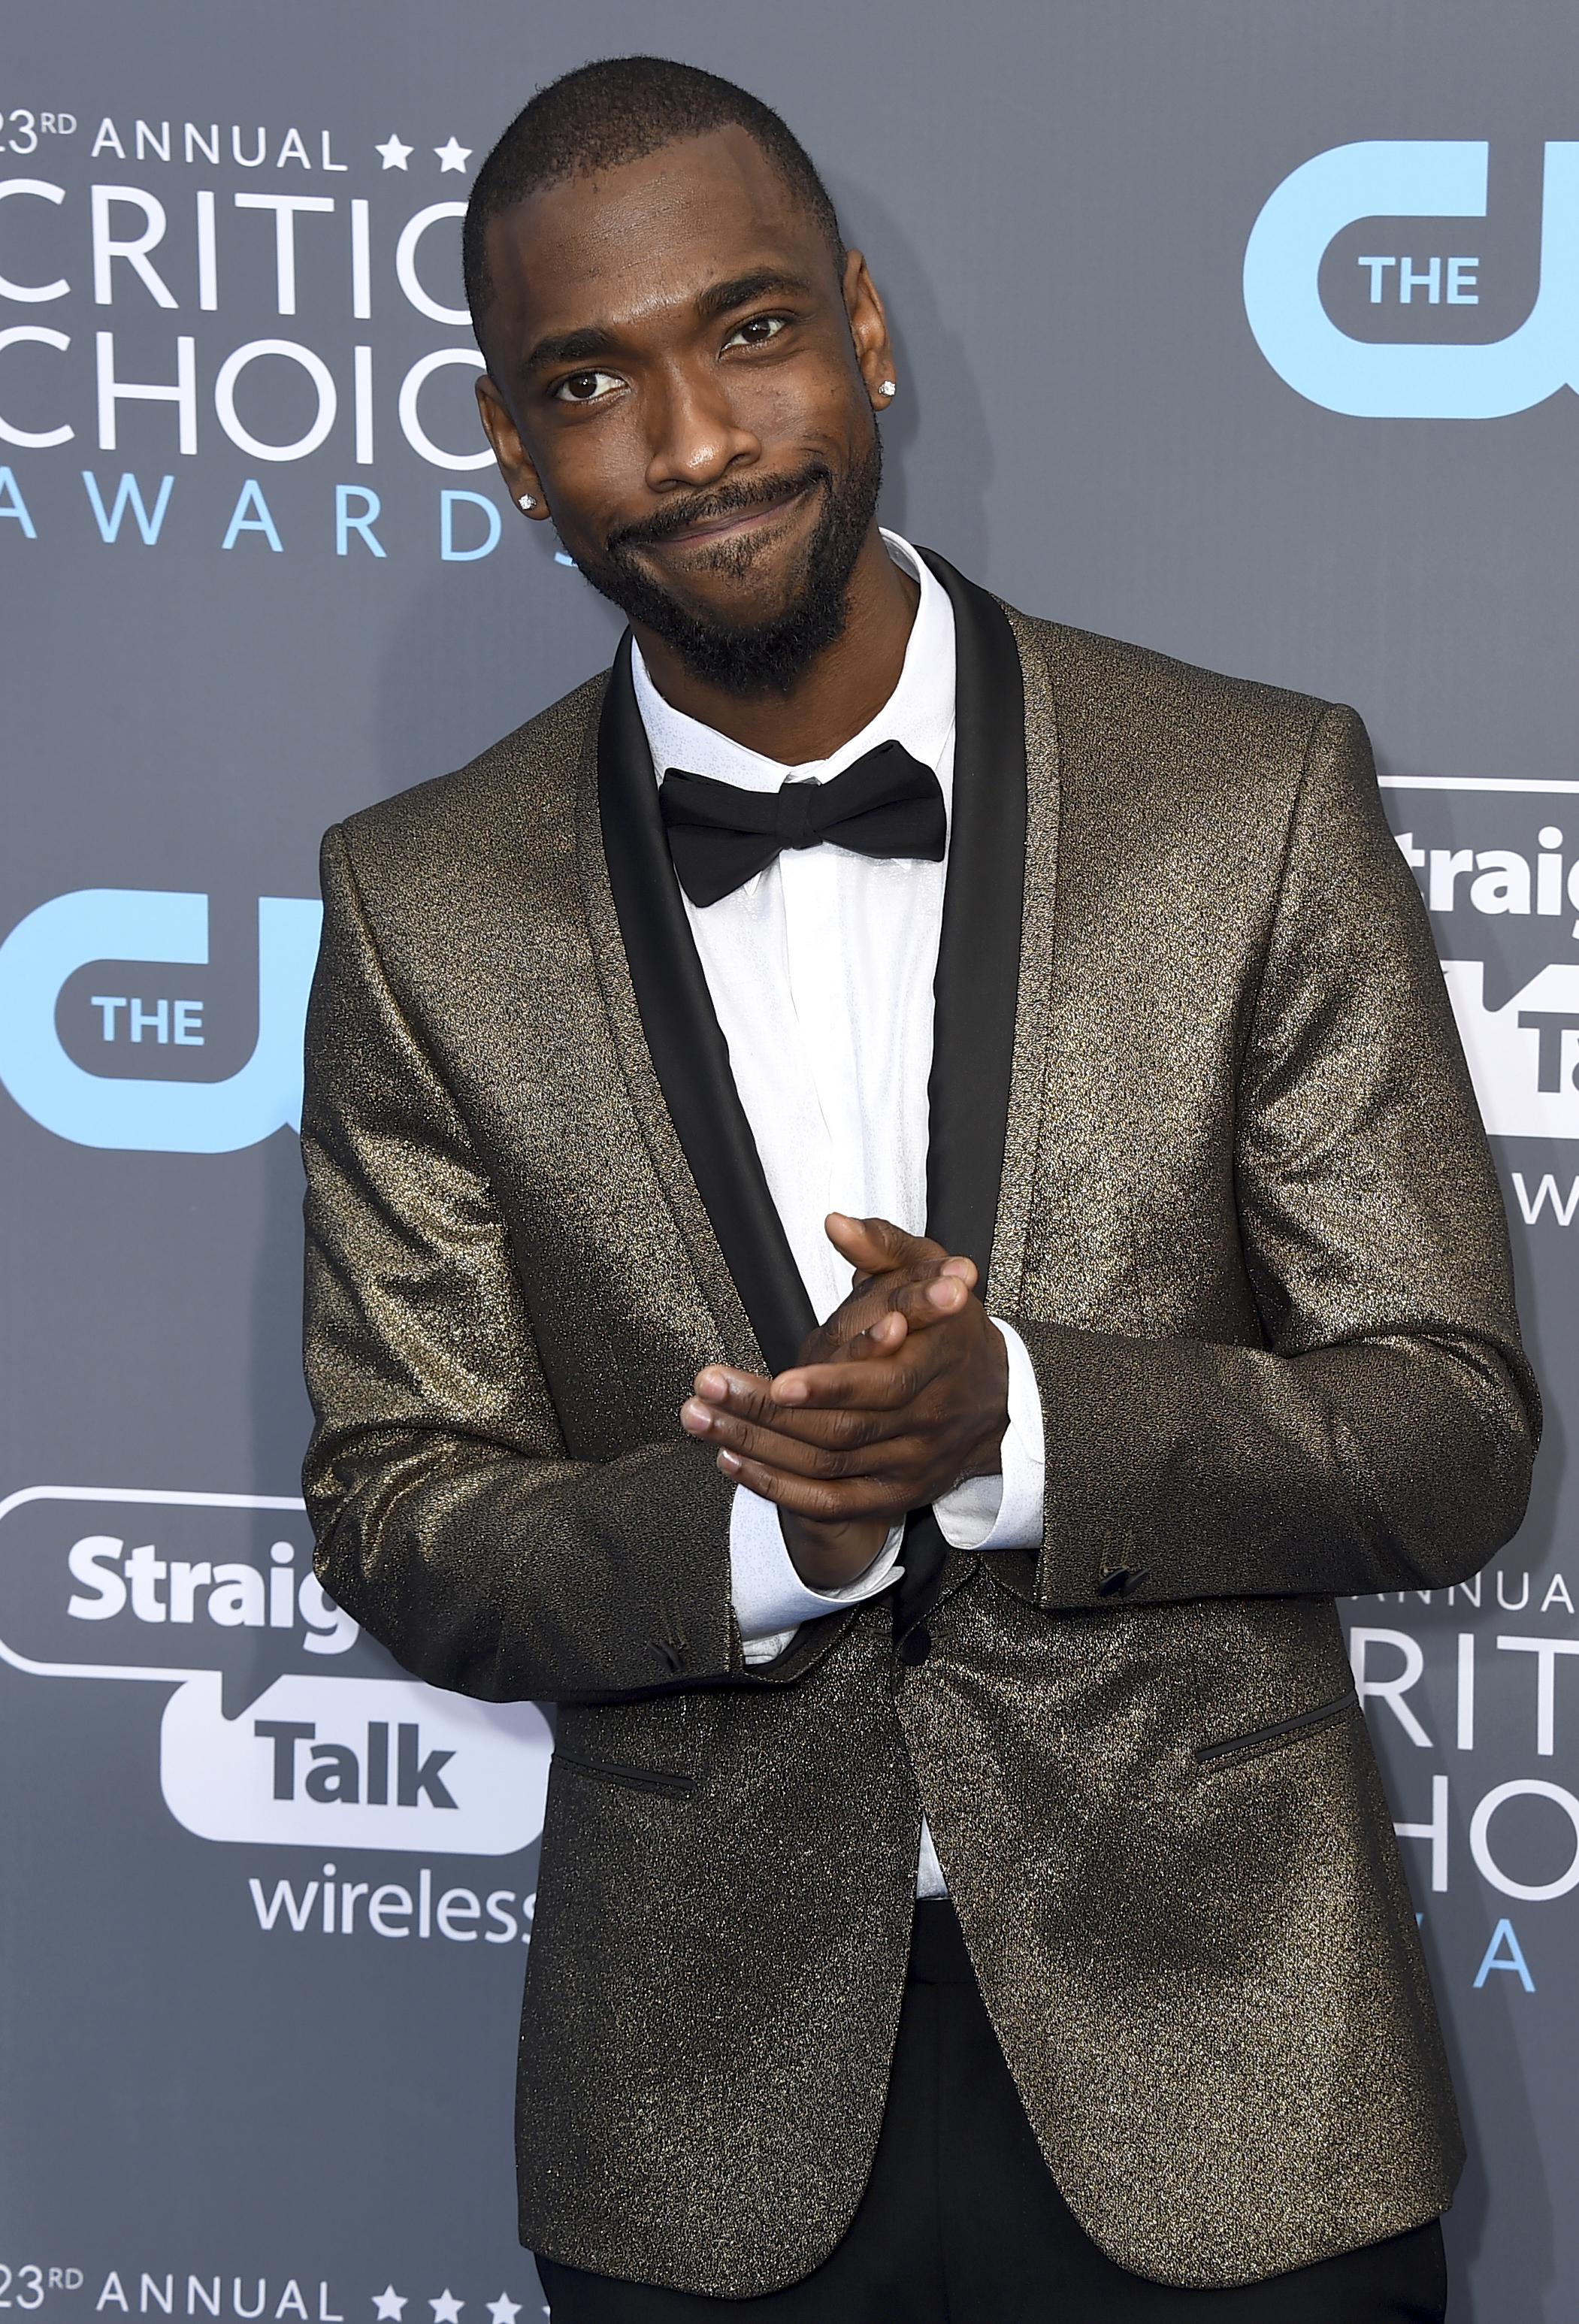 <div class='meta'><div class='origin-logo' data-origin='AP'></div><span class='caption-text' data-credit='Jordan Strauss/Invision/AP'>Jay Pharoah arrives at the 23rd annual Critics' Choice Awards at the Barker Hangar on Thursday, Jan. 11, 2018, in Santa Monica, Calif.</span></div>